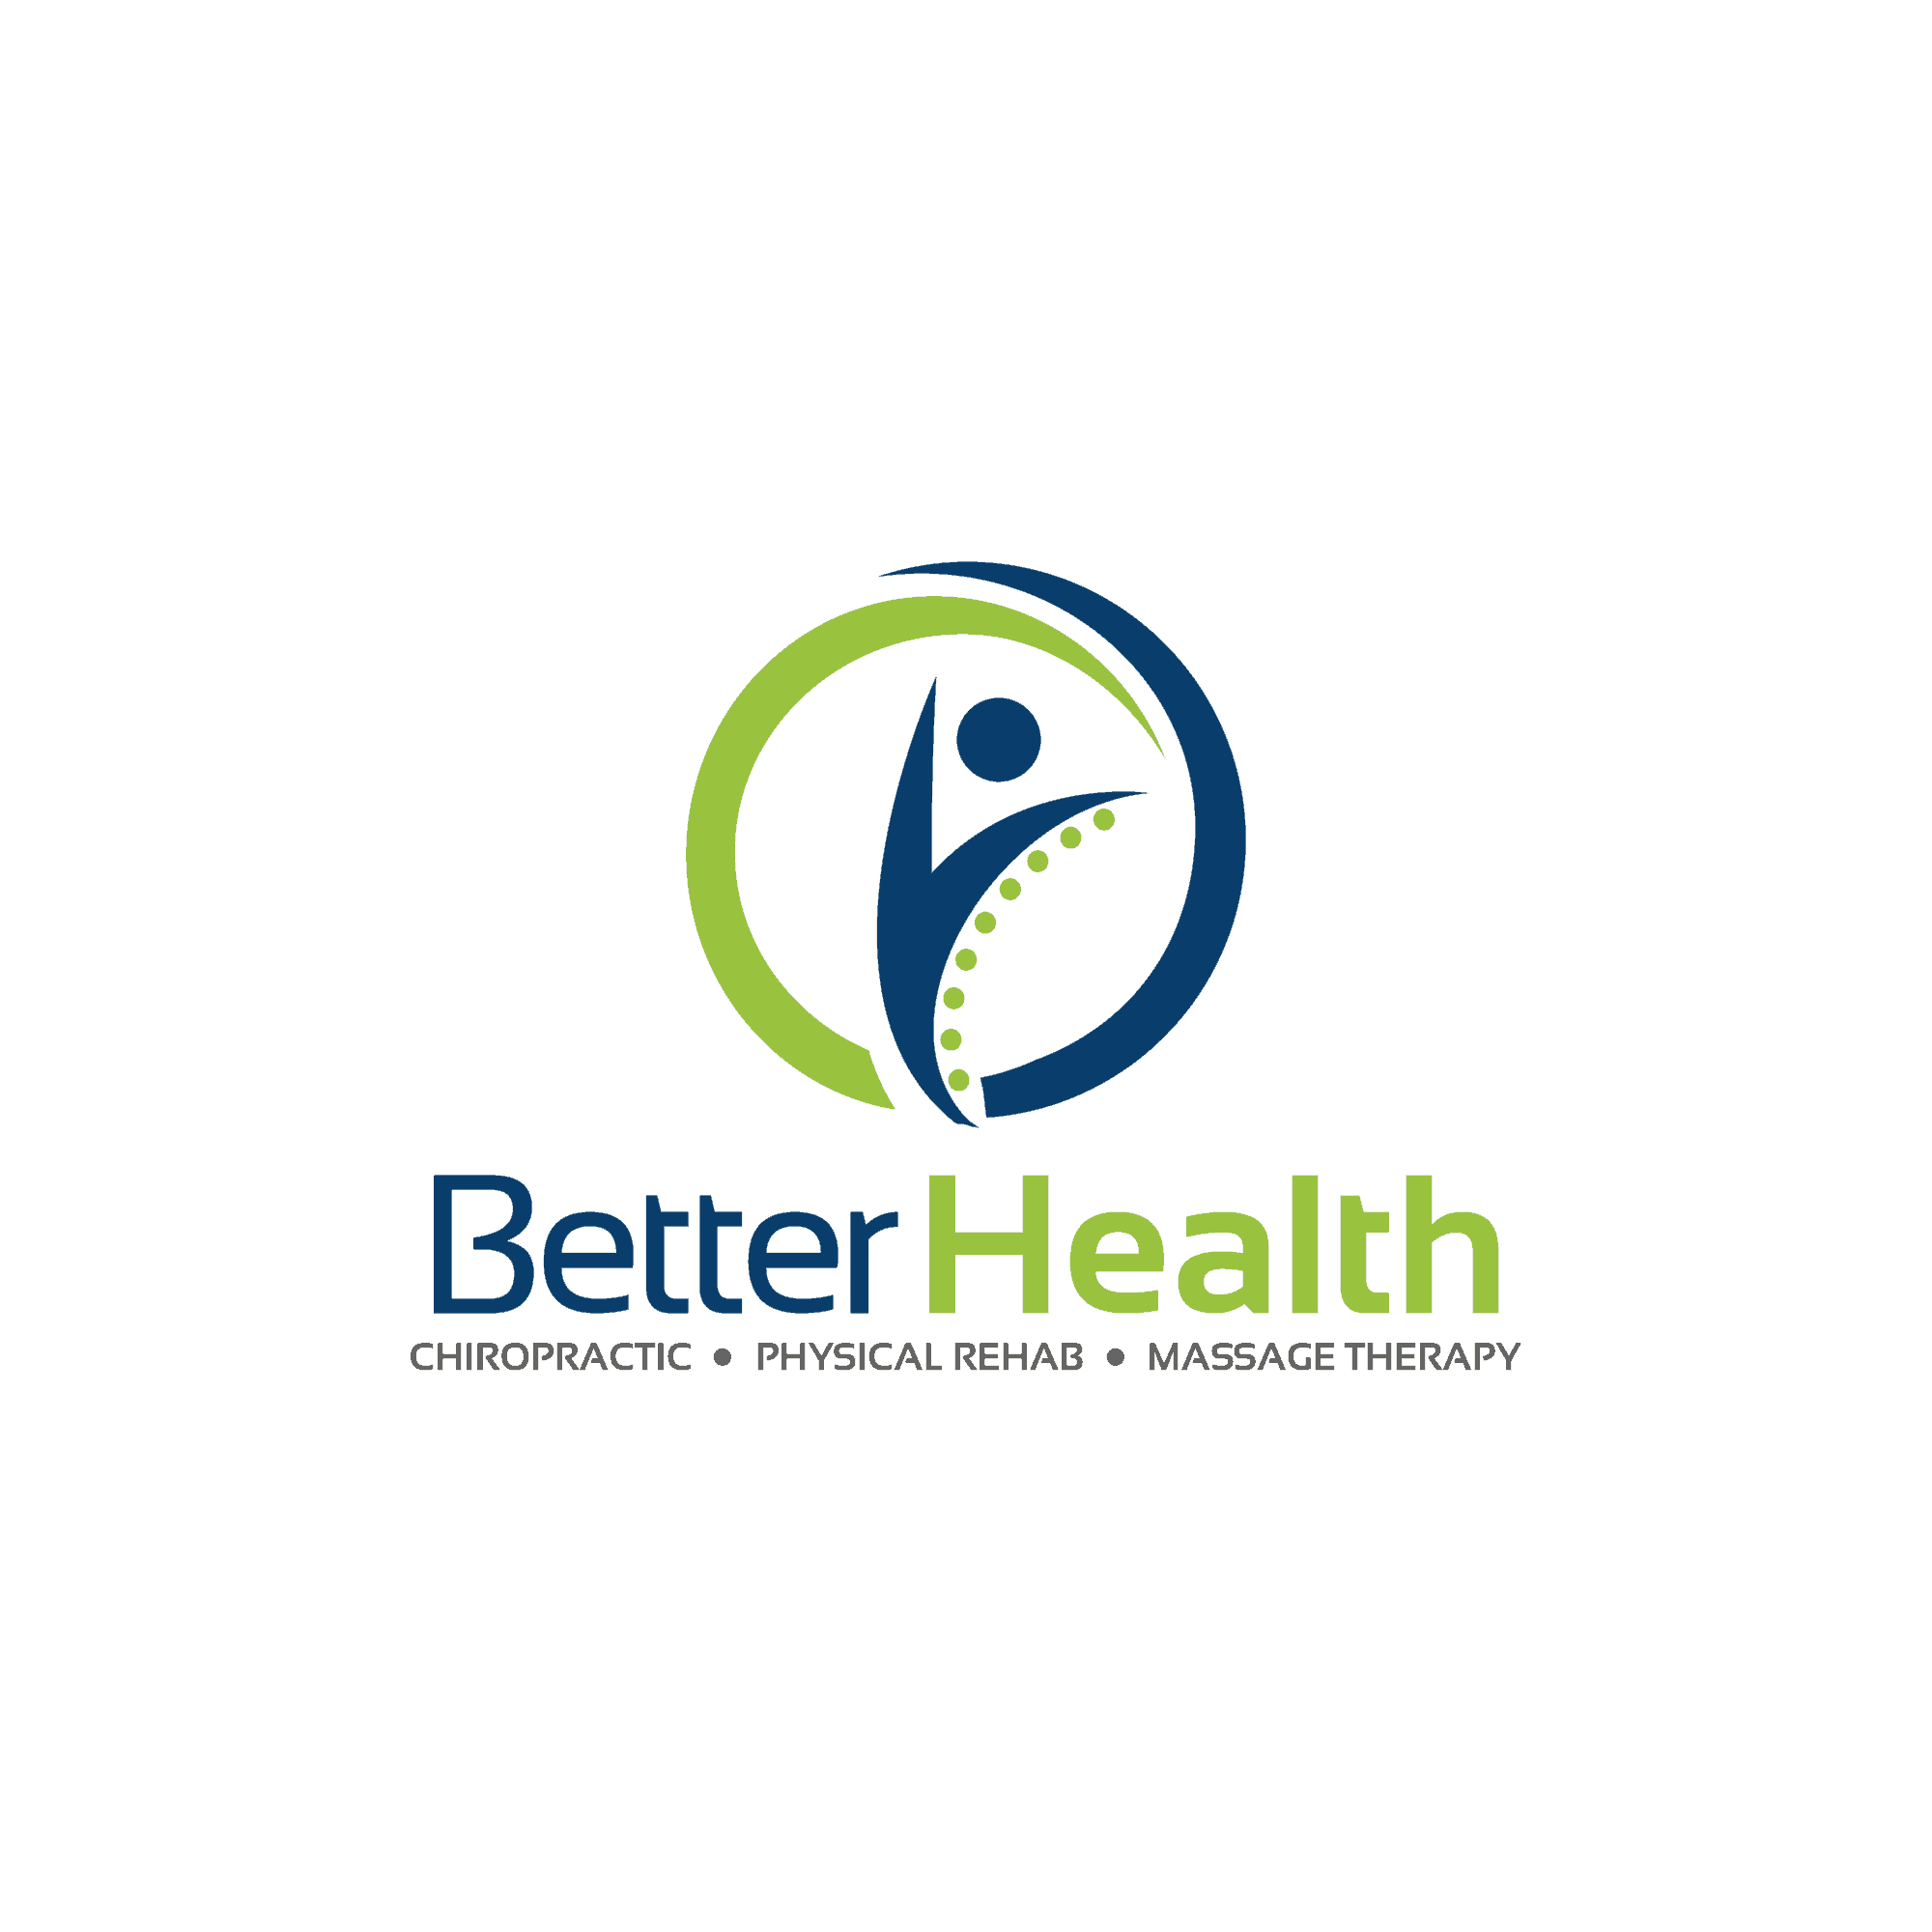 Better Health Chiropractic & Physical Rehab - Anchorage, AK